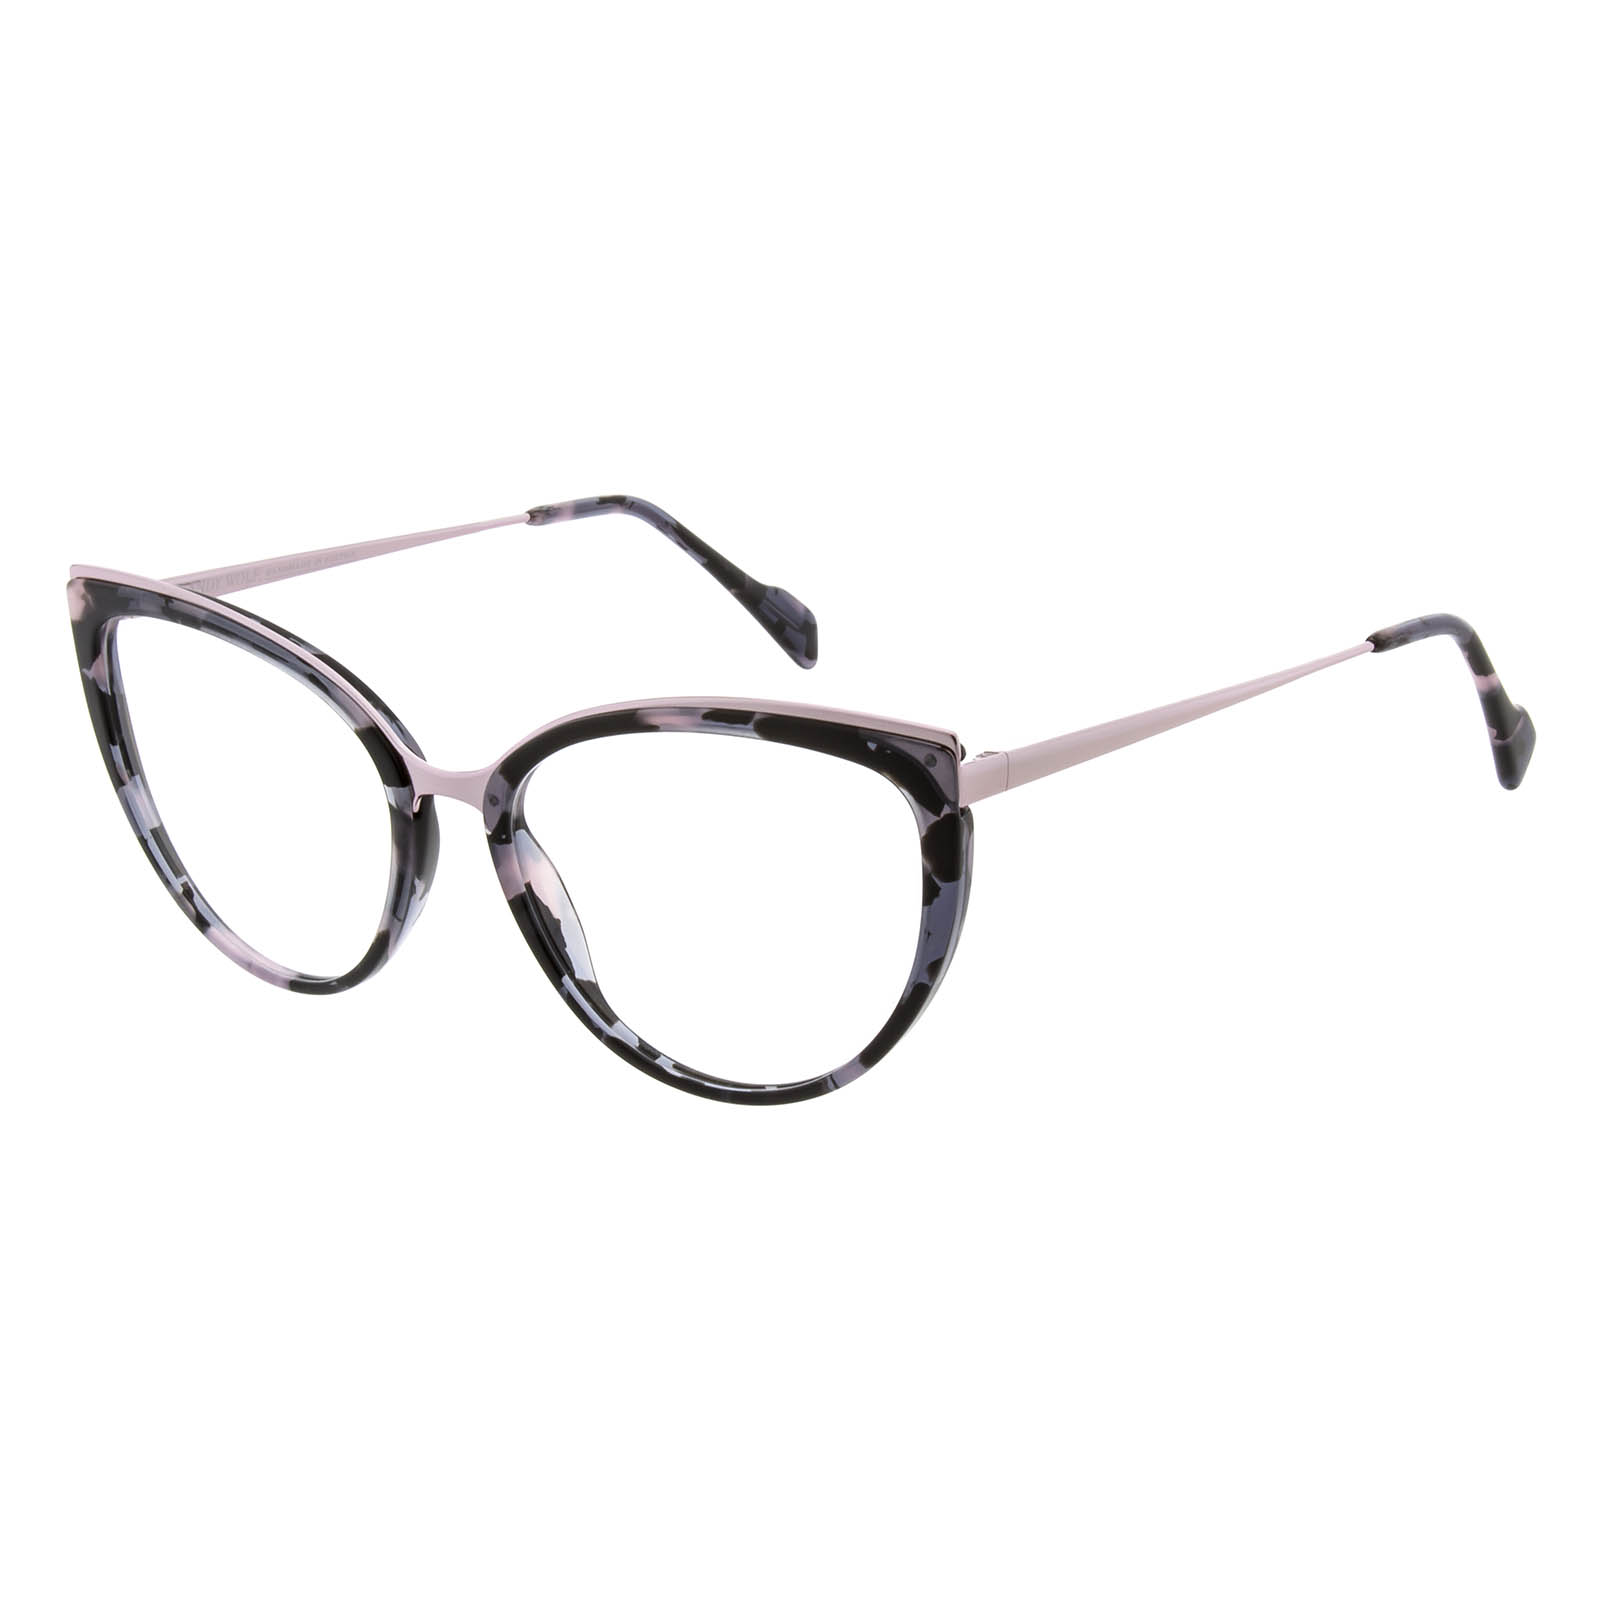 ANDY WOLF EYEWEAR_CAMPBELL_03_side